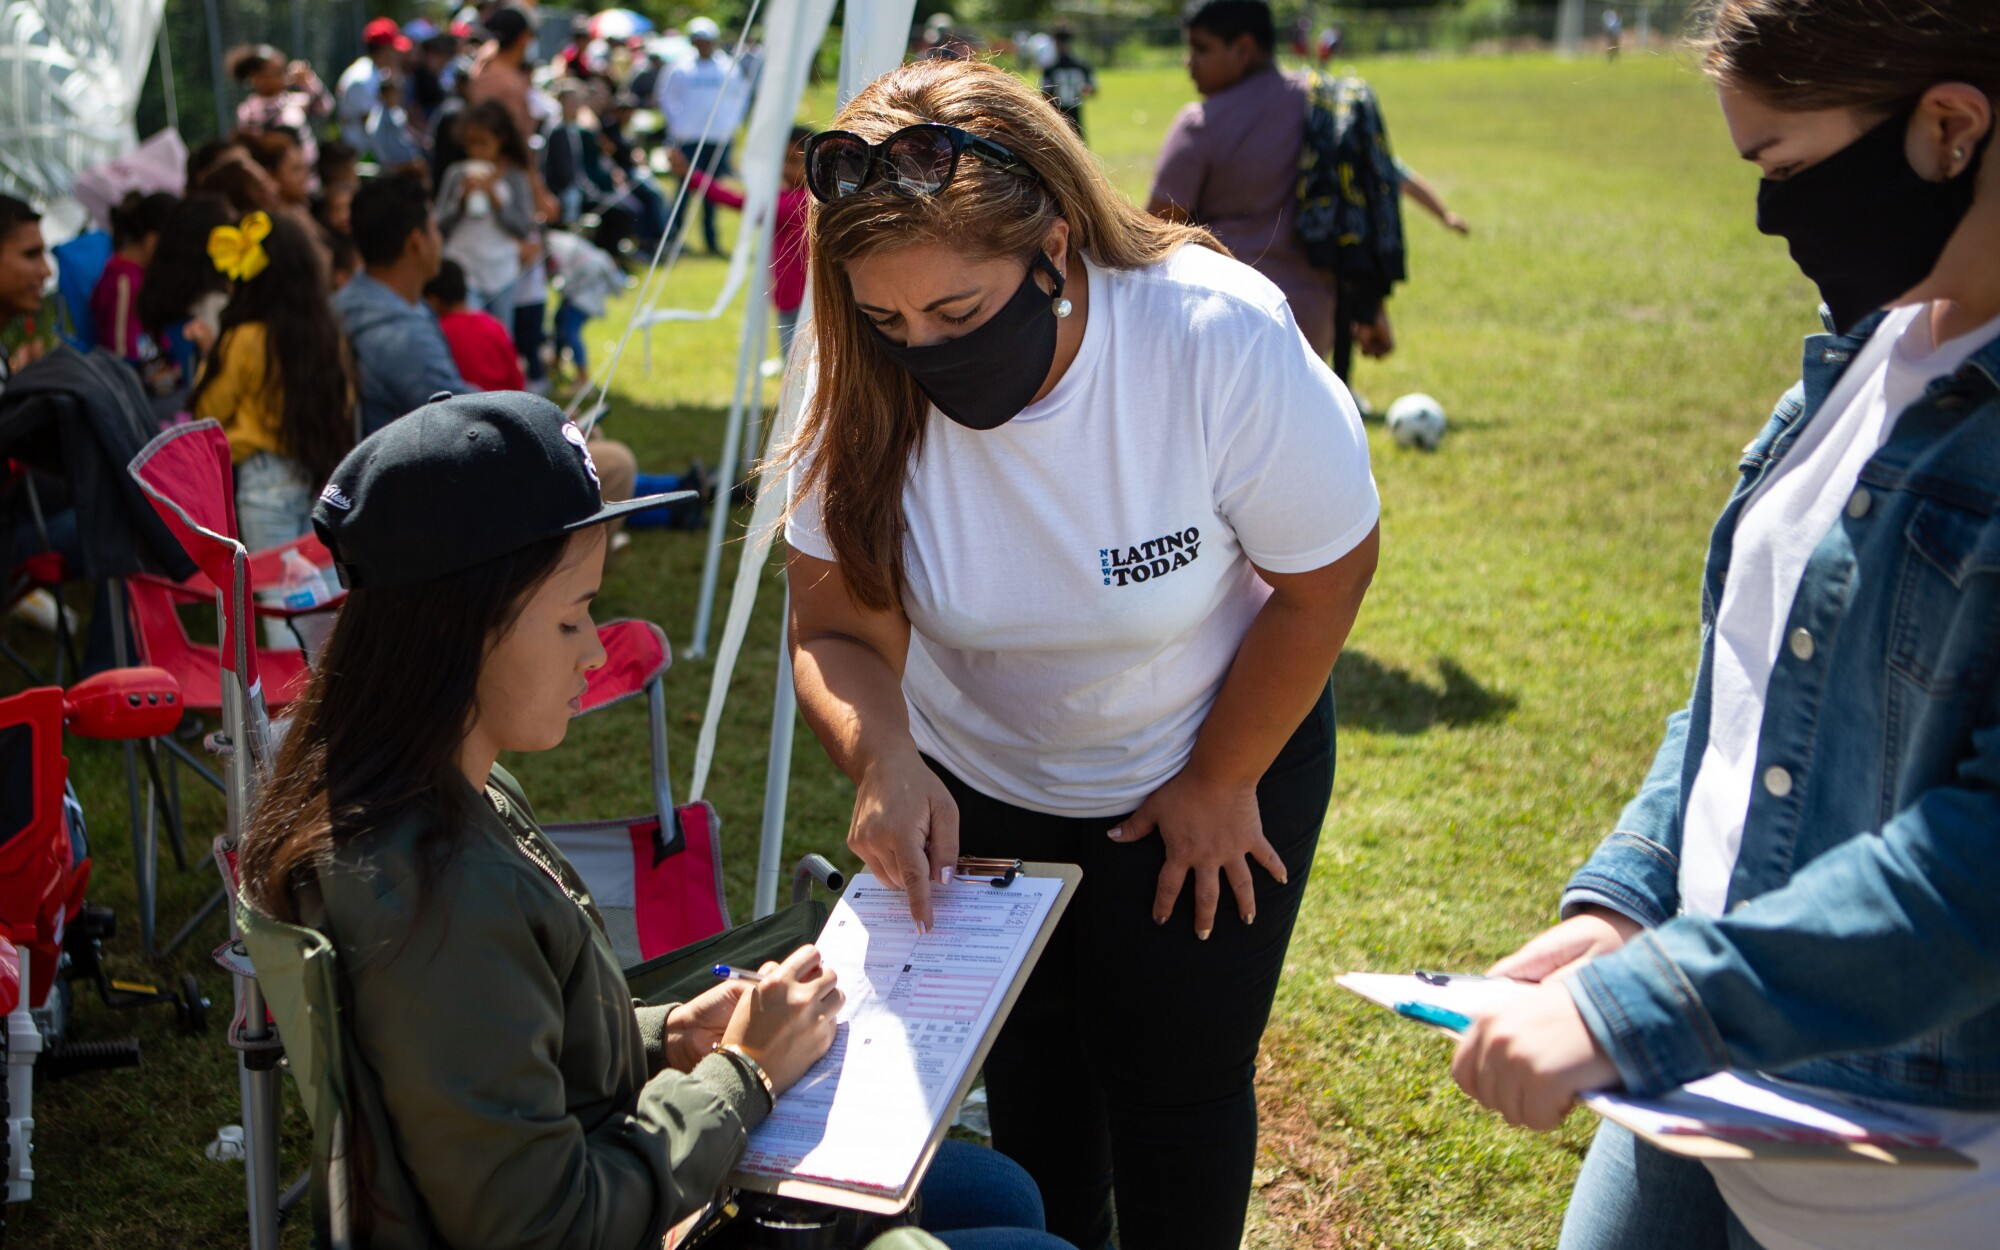 Sandra Amado Gómez and her daughter Aylen Agostina Gómez register a woman to vote at a soccer game in Raleigh, N.C.